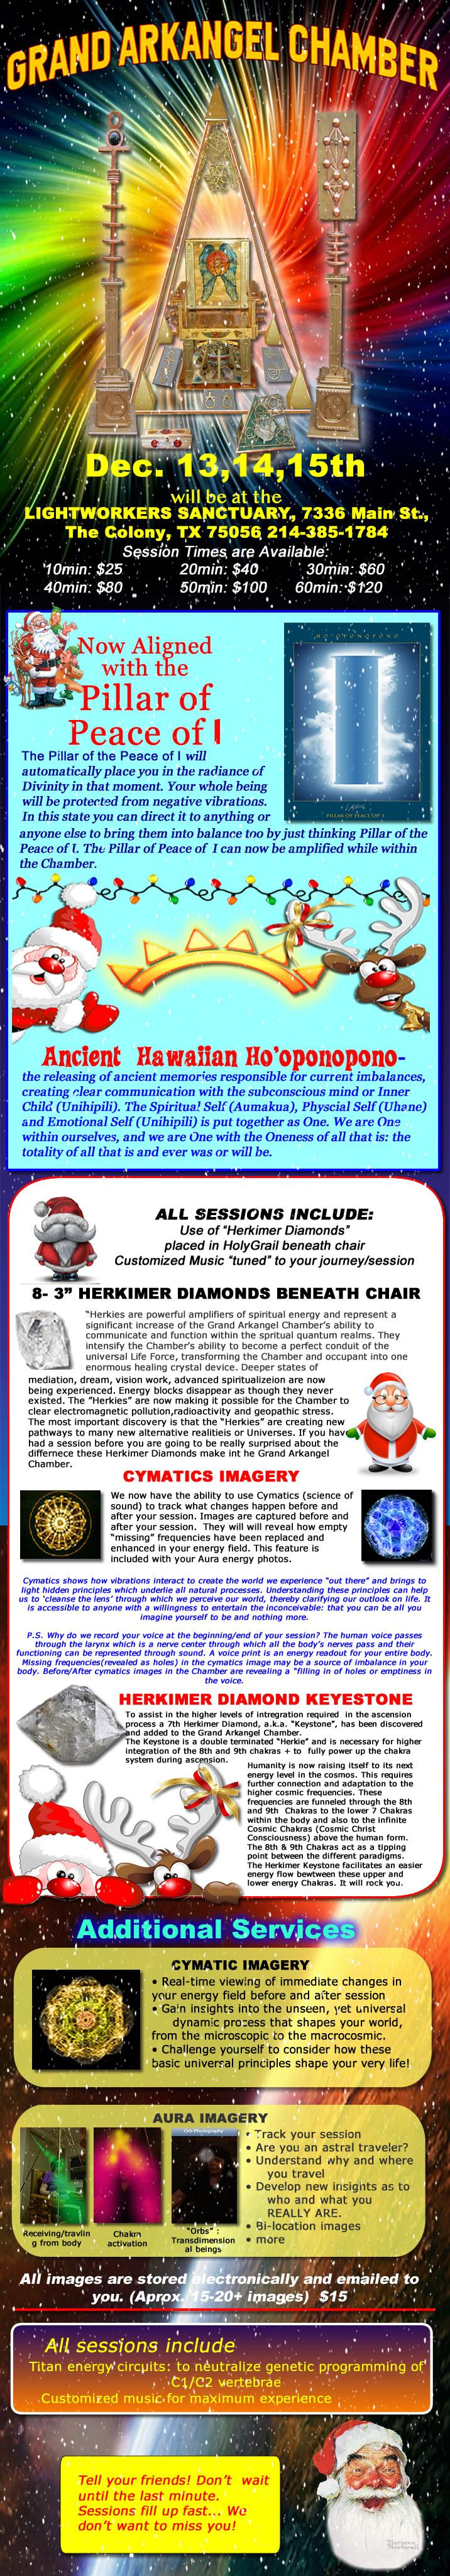 The Grand Arkangel Chamber will take place at Lightworker's Sanctuary on December 13, 14 and 15. Call to book a session.